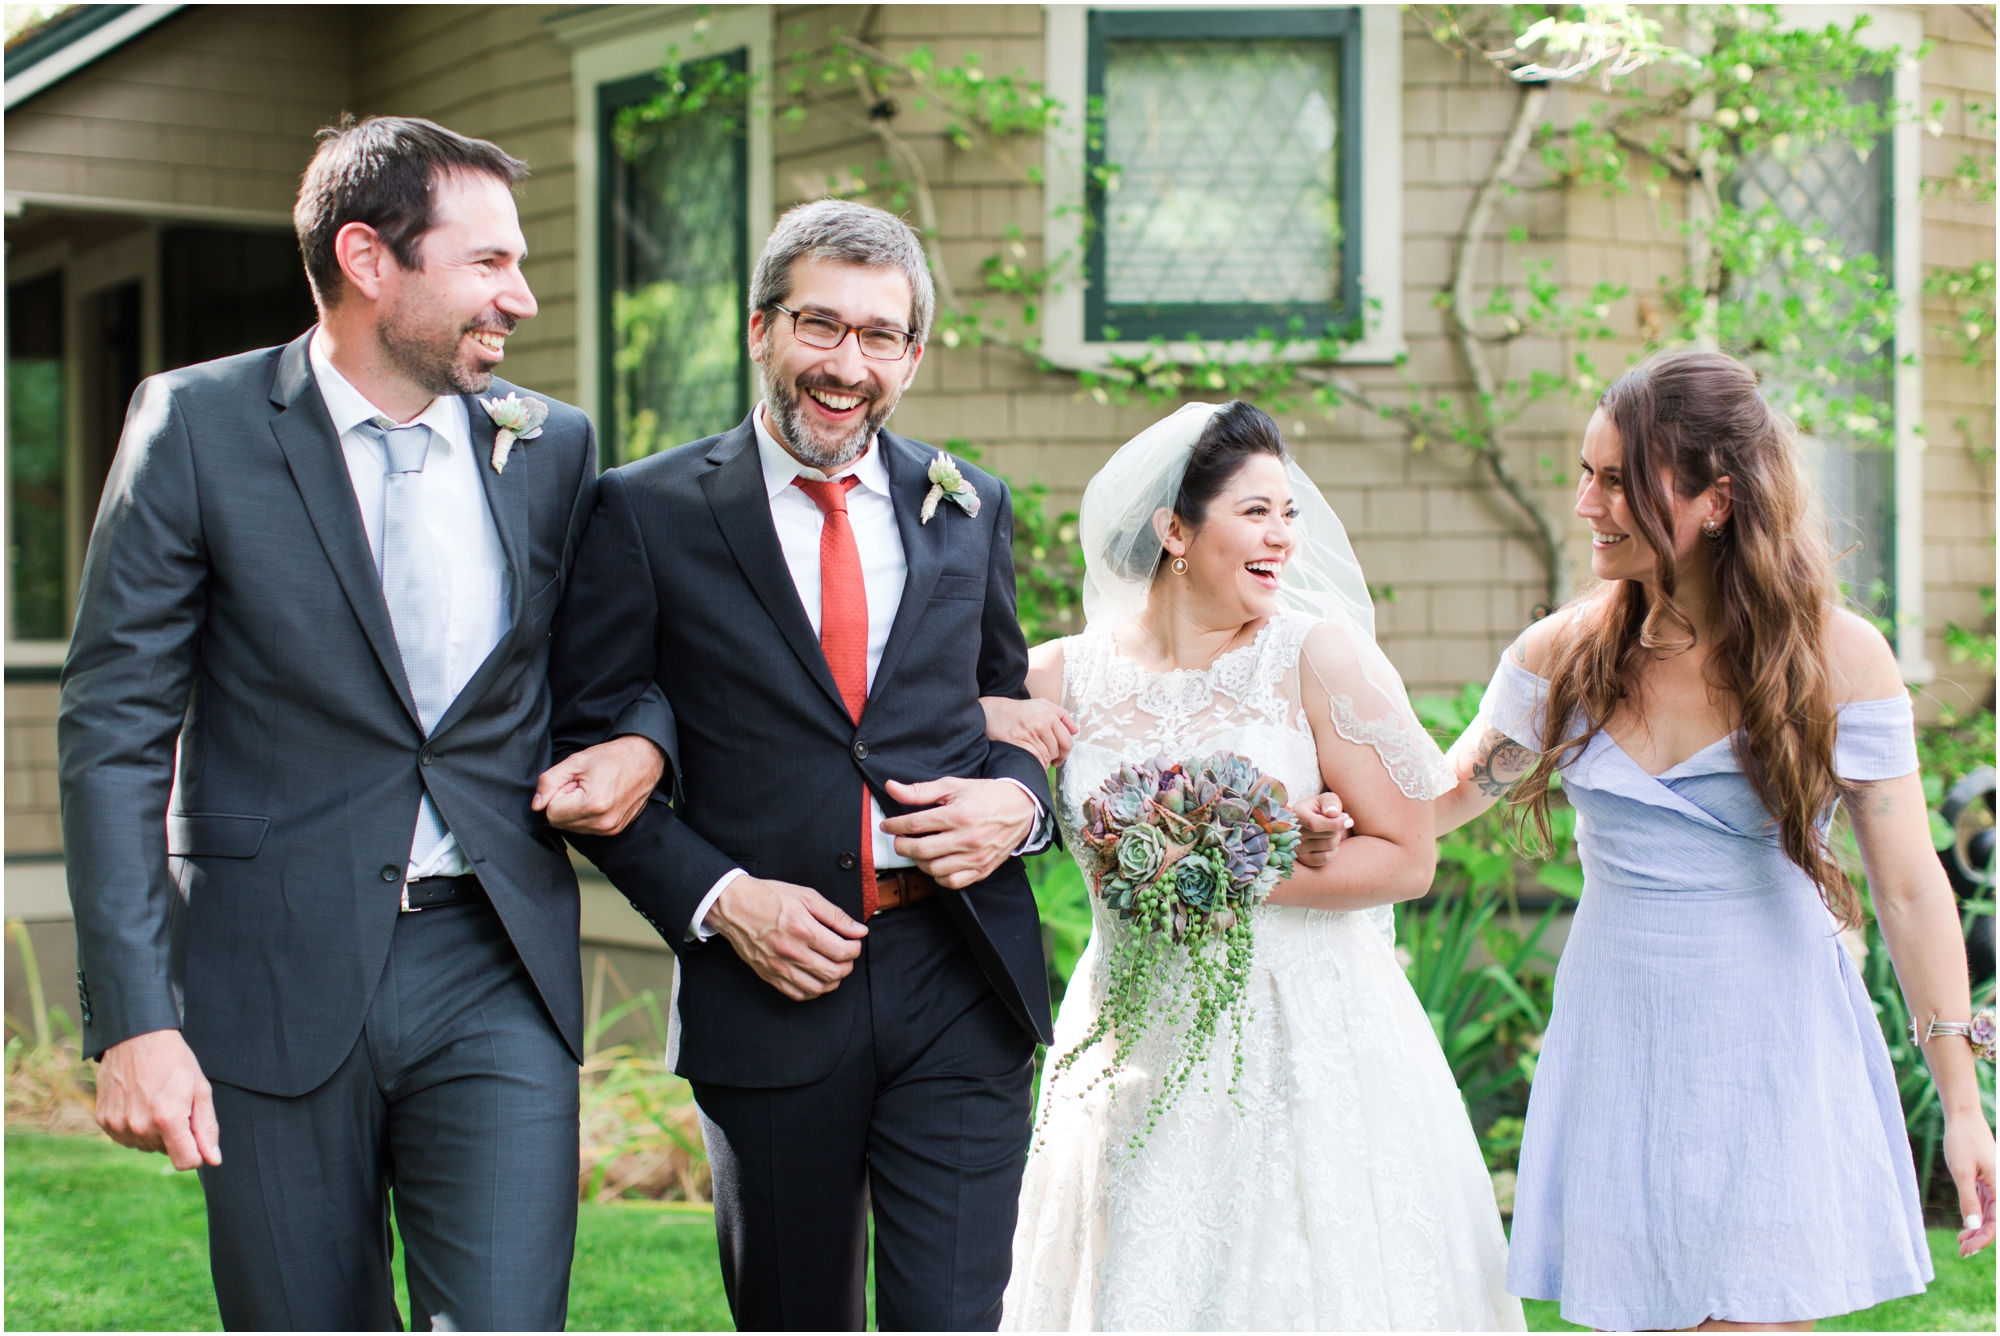 Garden wedding in Ellensburg, WA. Photos by Briana Calderon Photography based in the greater Seattle-Tacoma Area._1323.jpg